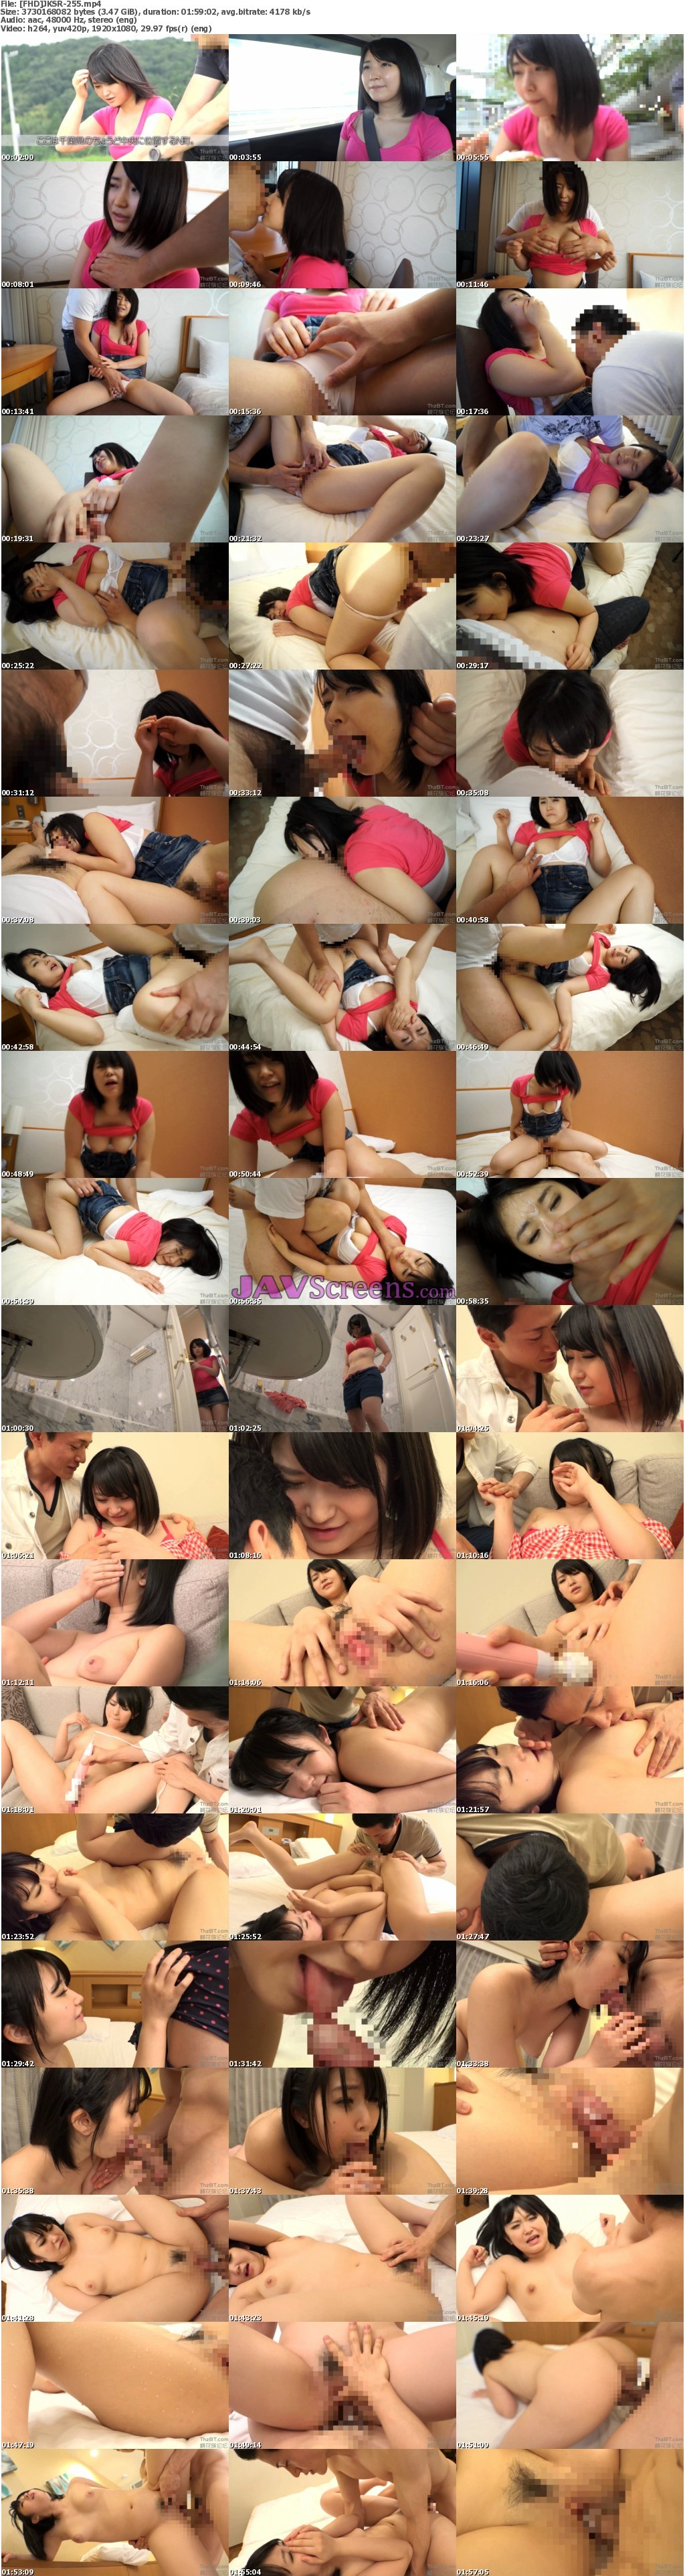 JKSR-255.jpg - JAV Screenshot